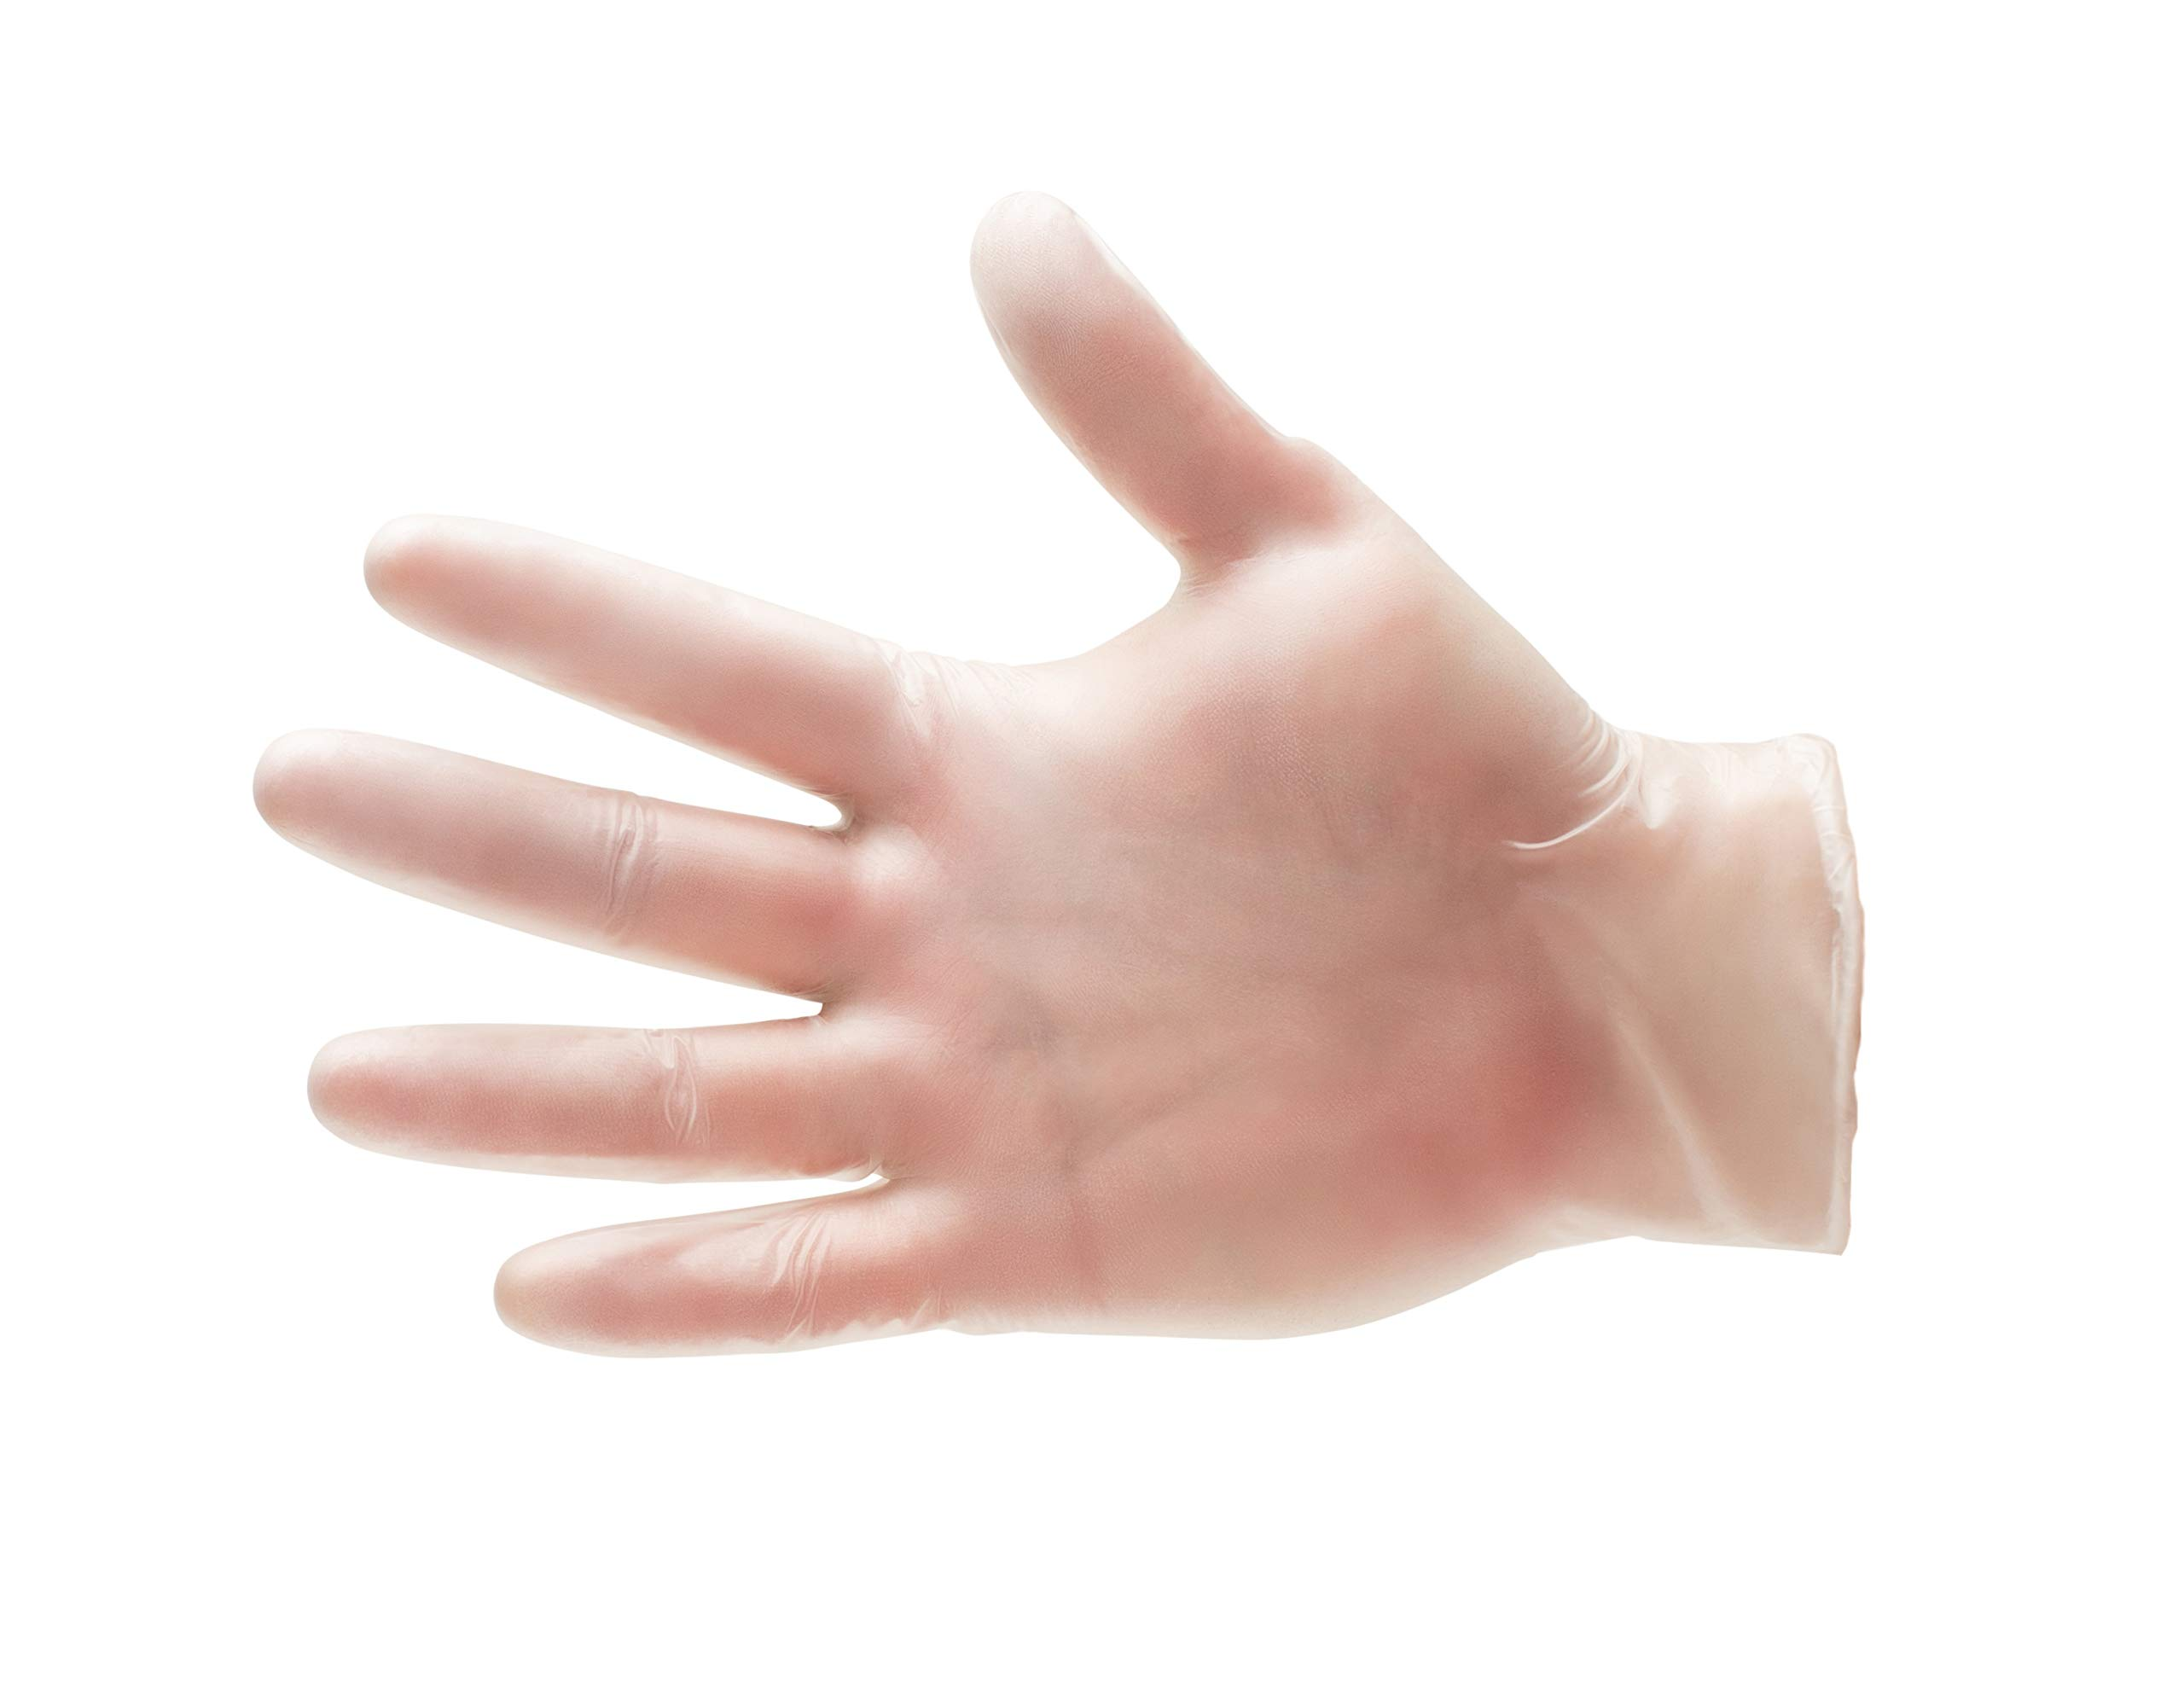 Vinyl Disposable Powdered Free Gloves, 5 Mil Thickness, Safety Medical Exam Size-Small (3000 count)